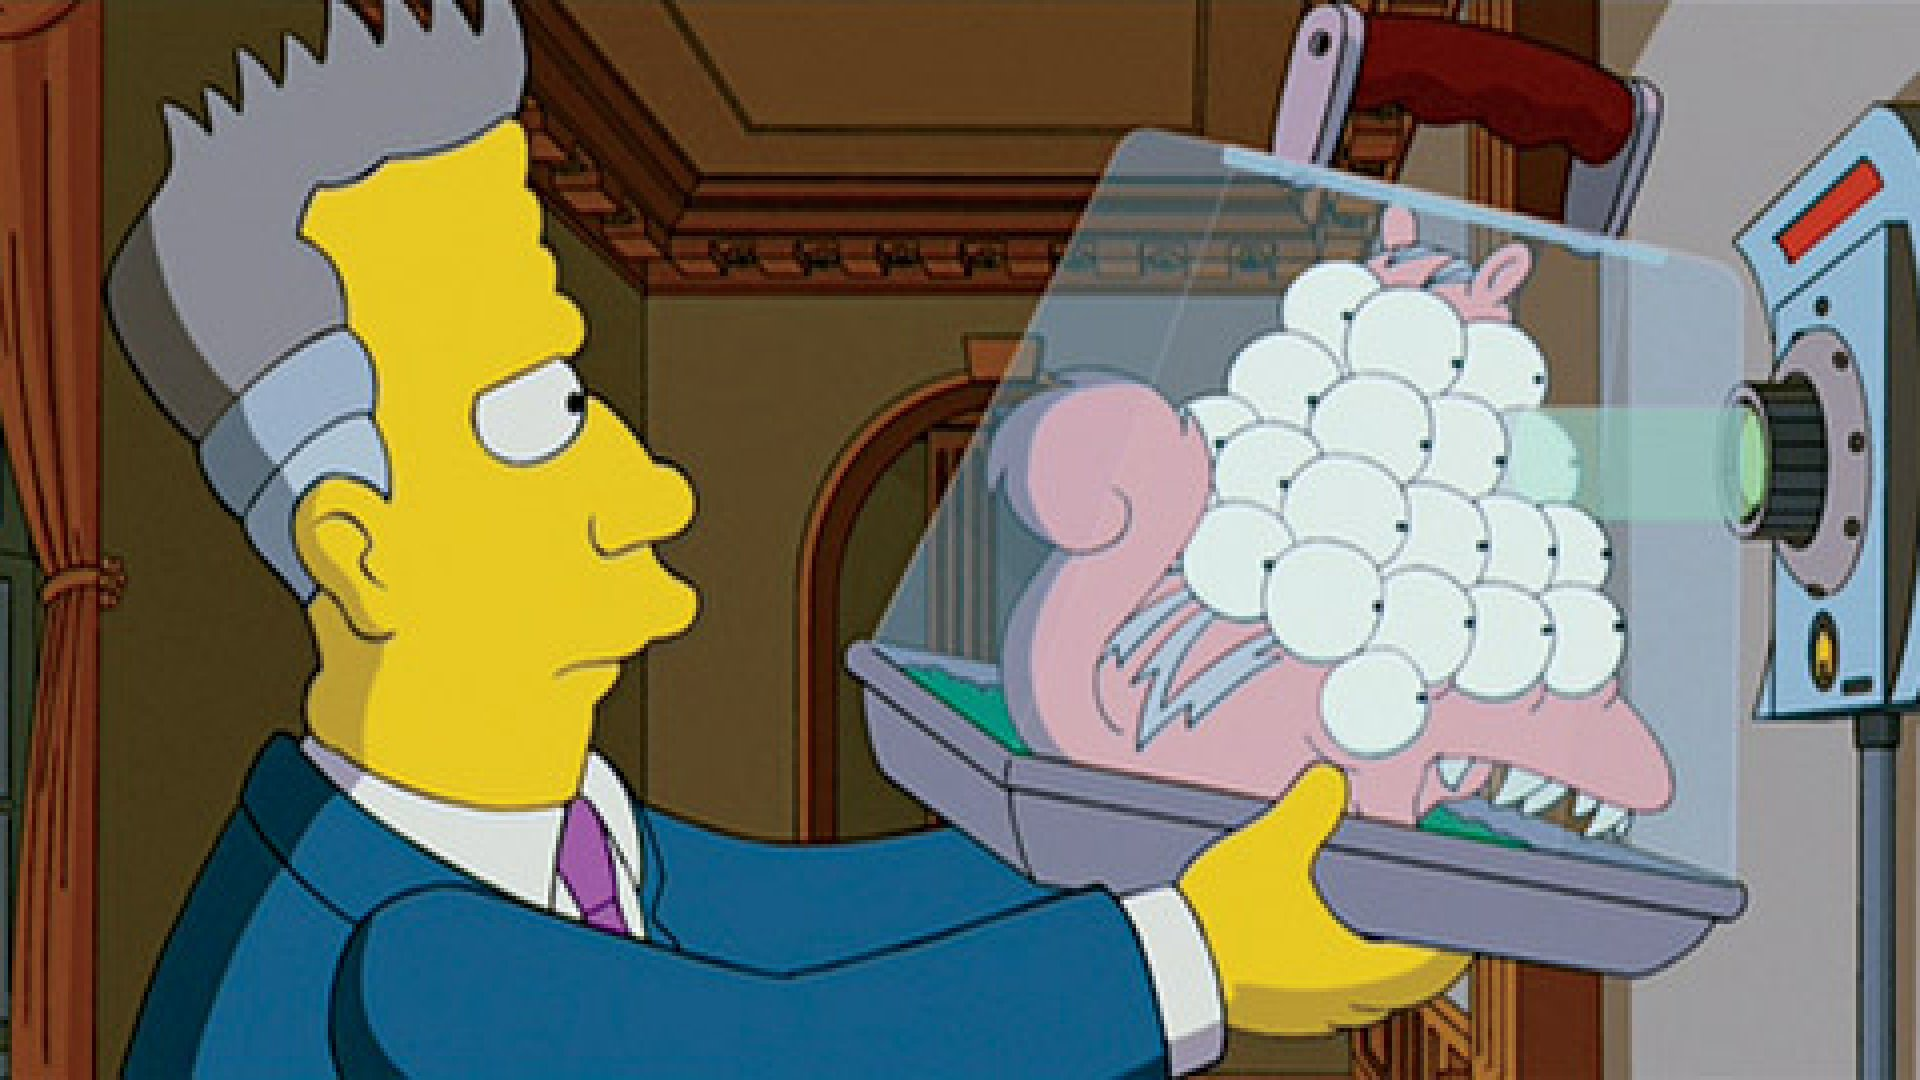 The iris recognition device in <em>The Simpsons Movie</em>